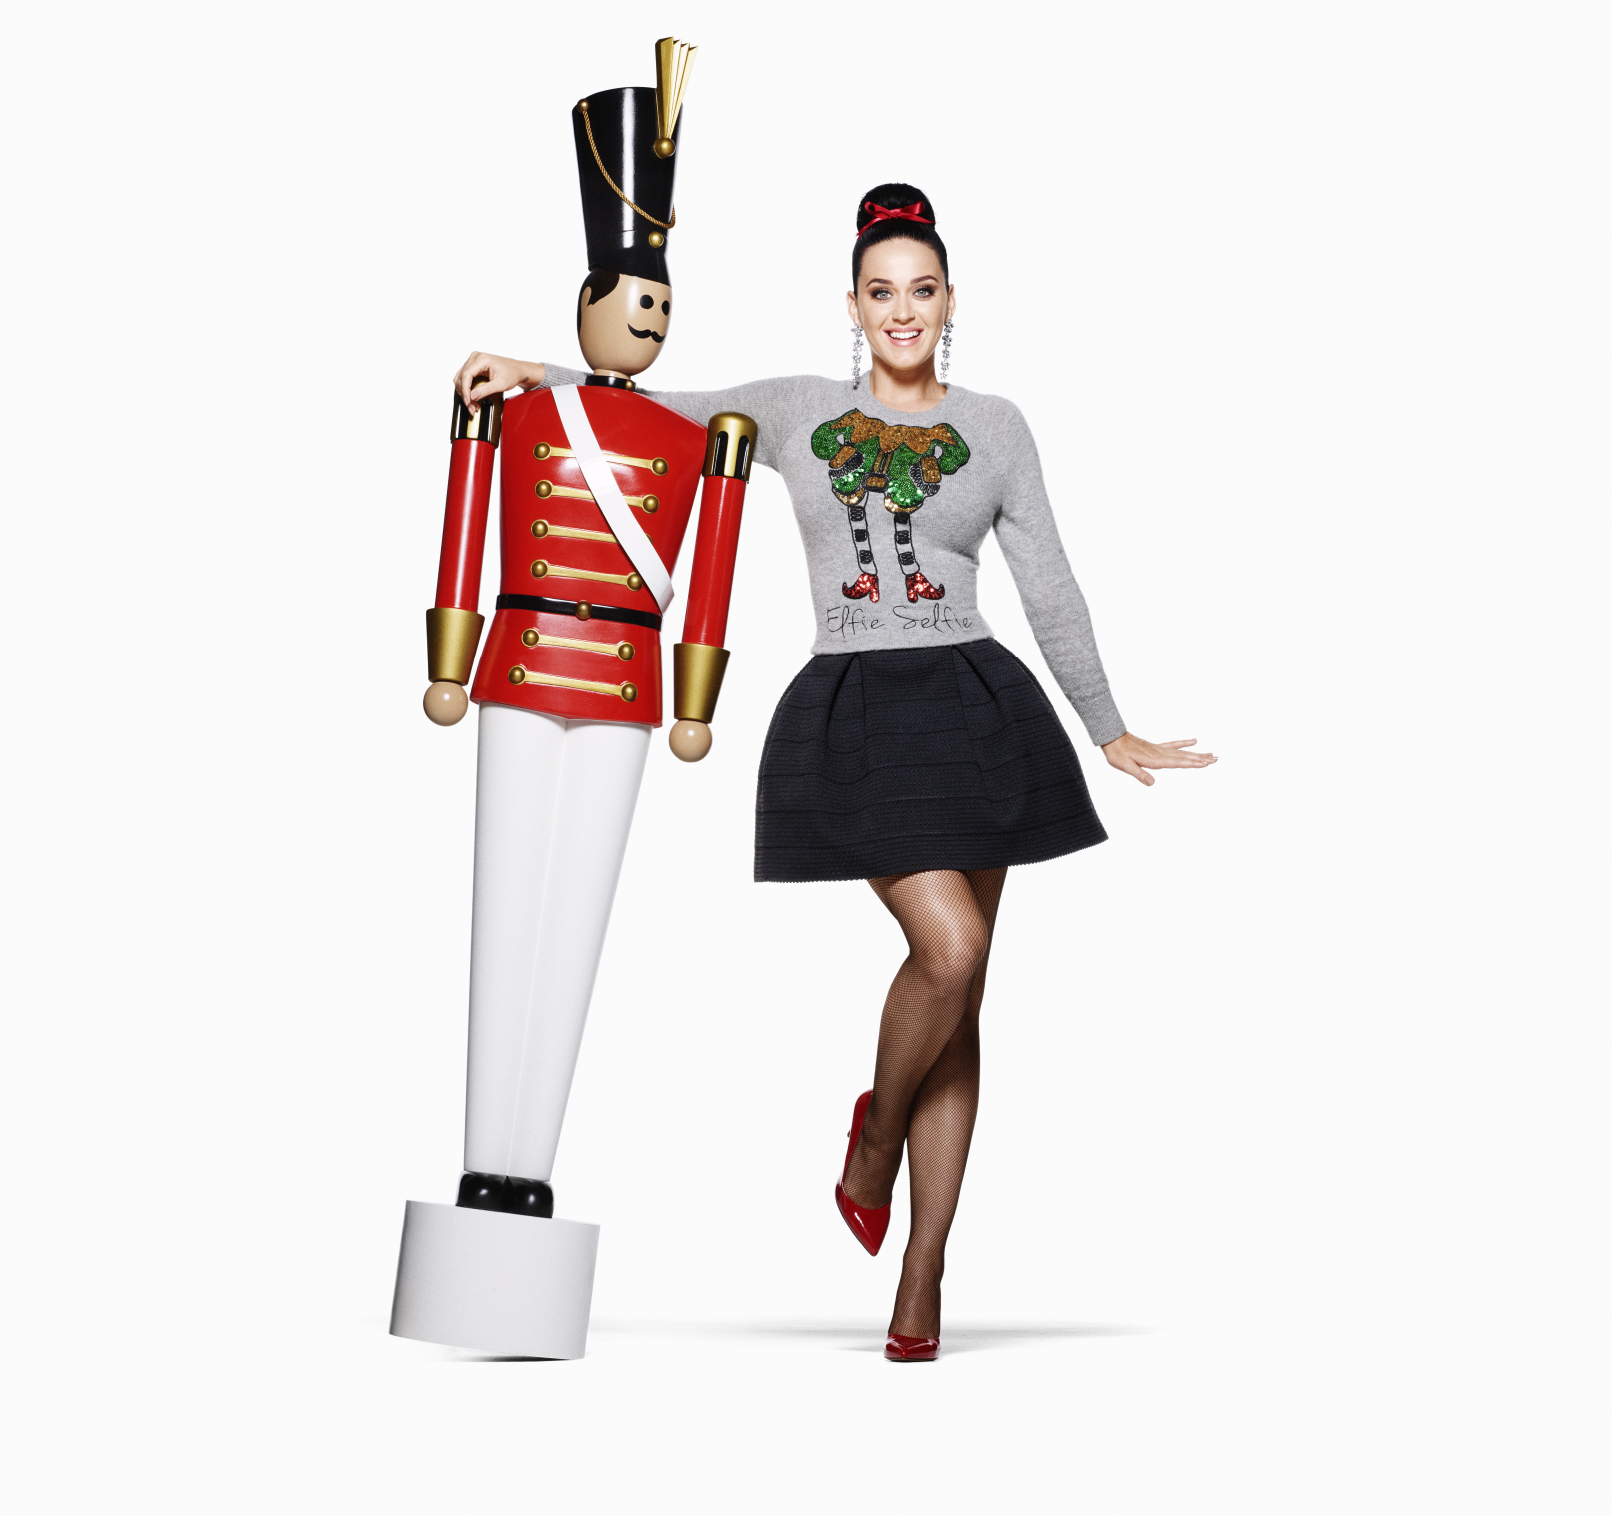 H&M Natale 2015 Katy Perry